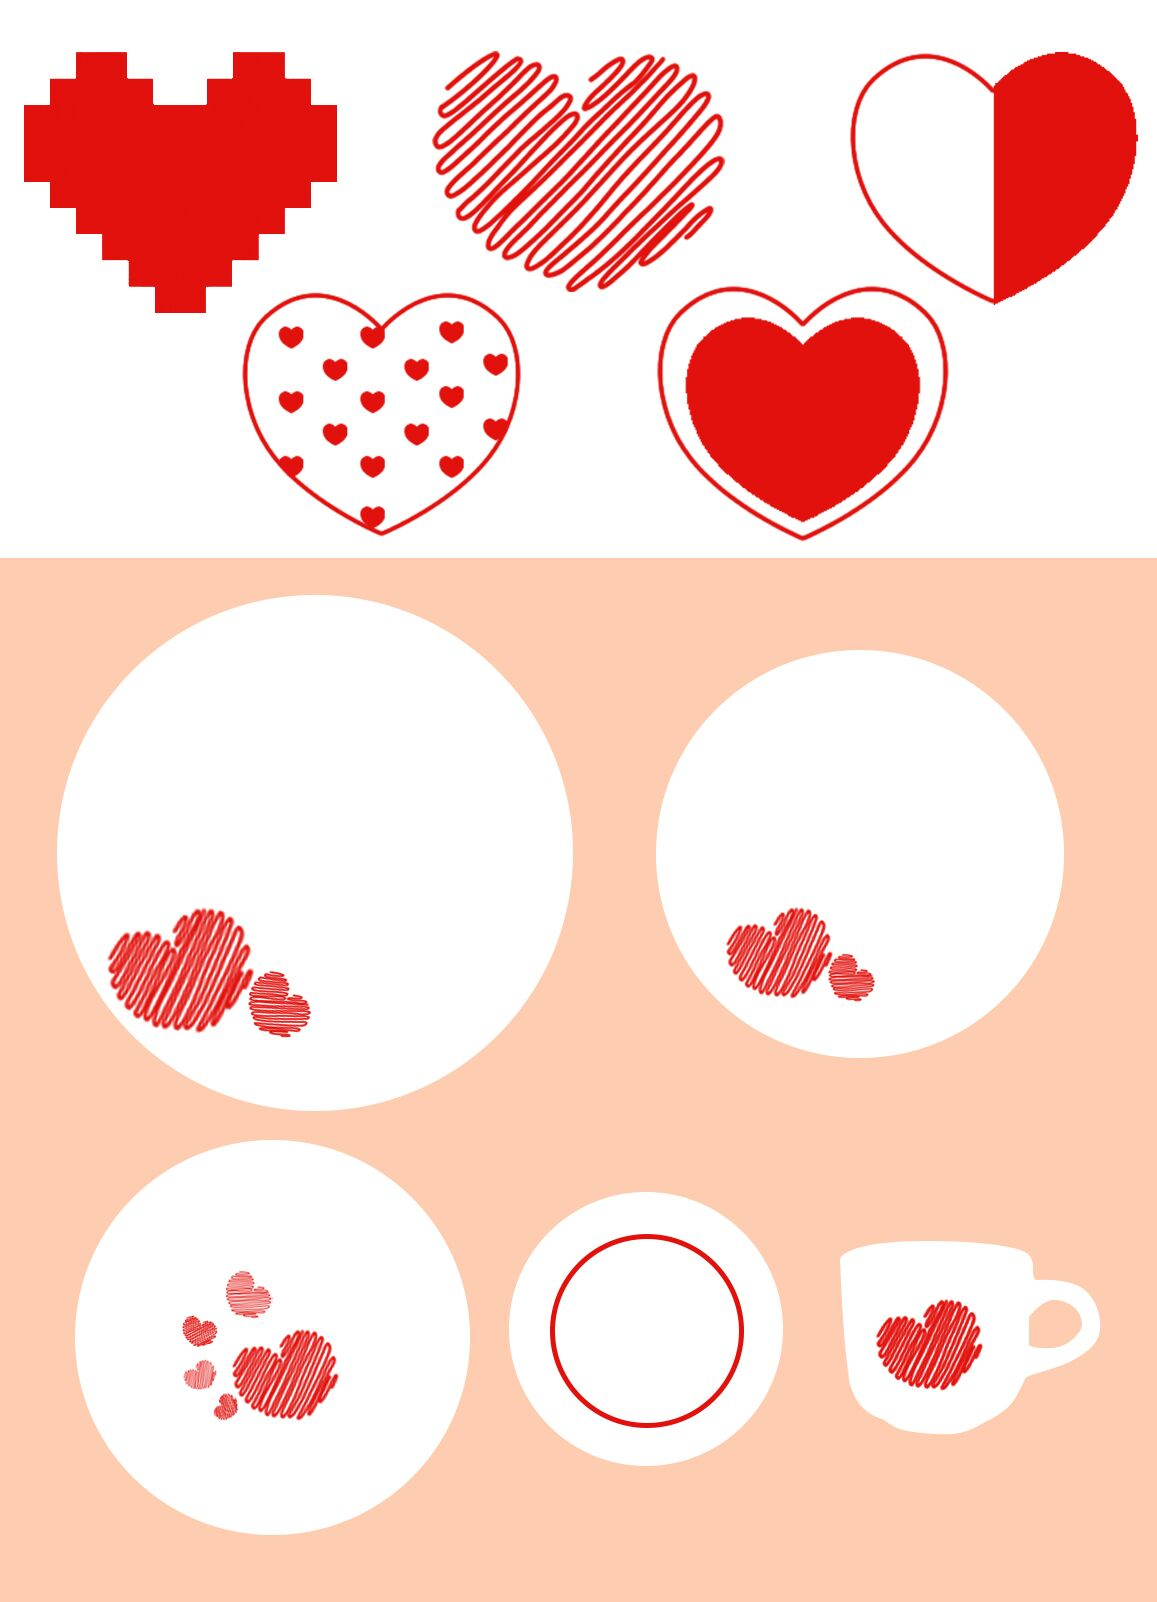 Heart-shaped design decorative porcelain tableware set